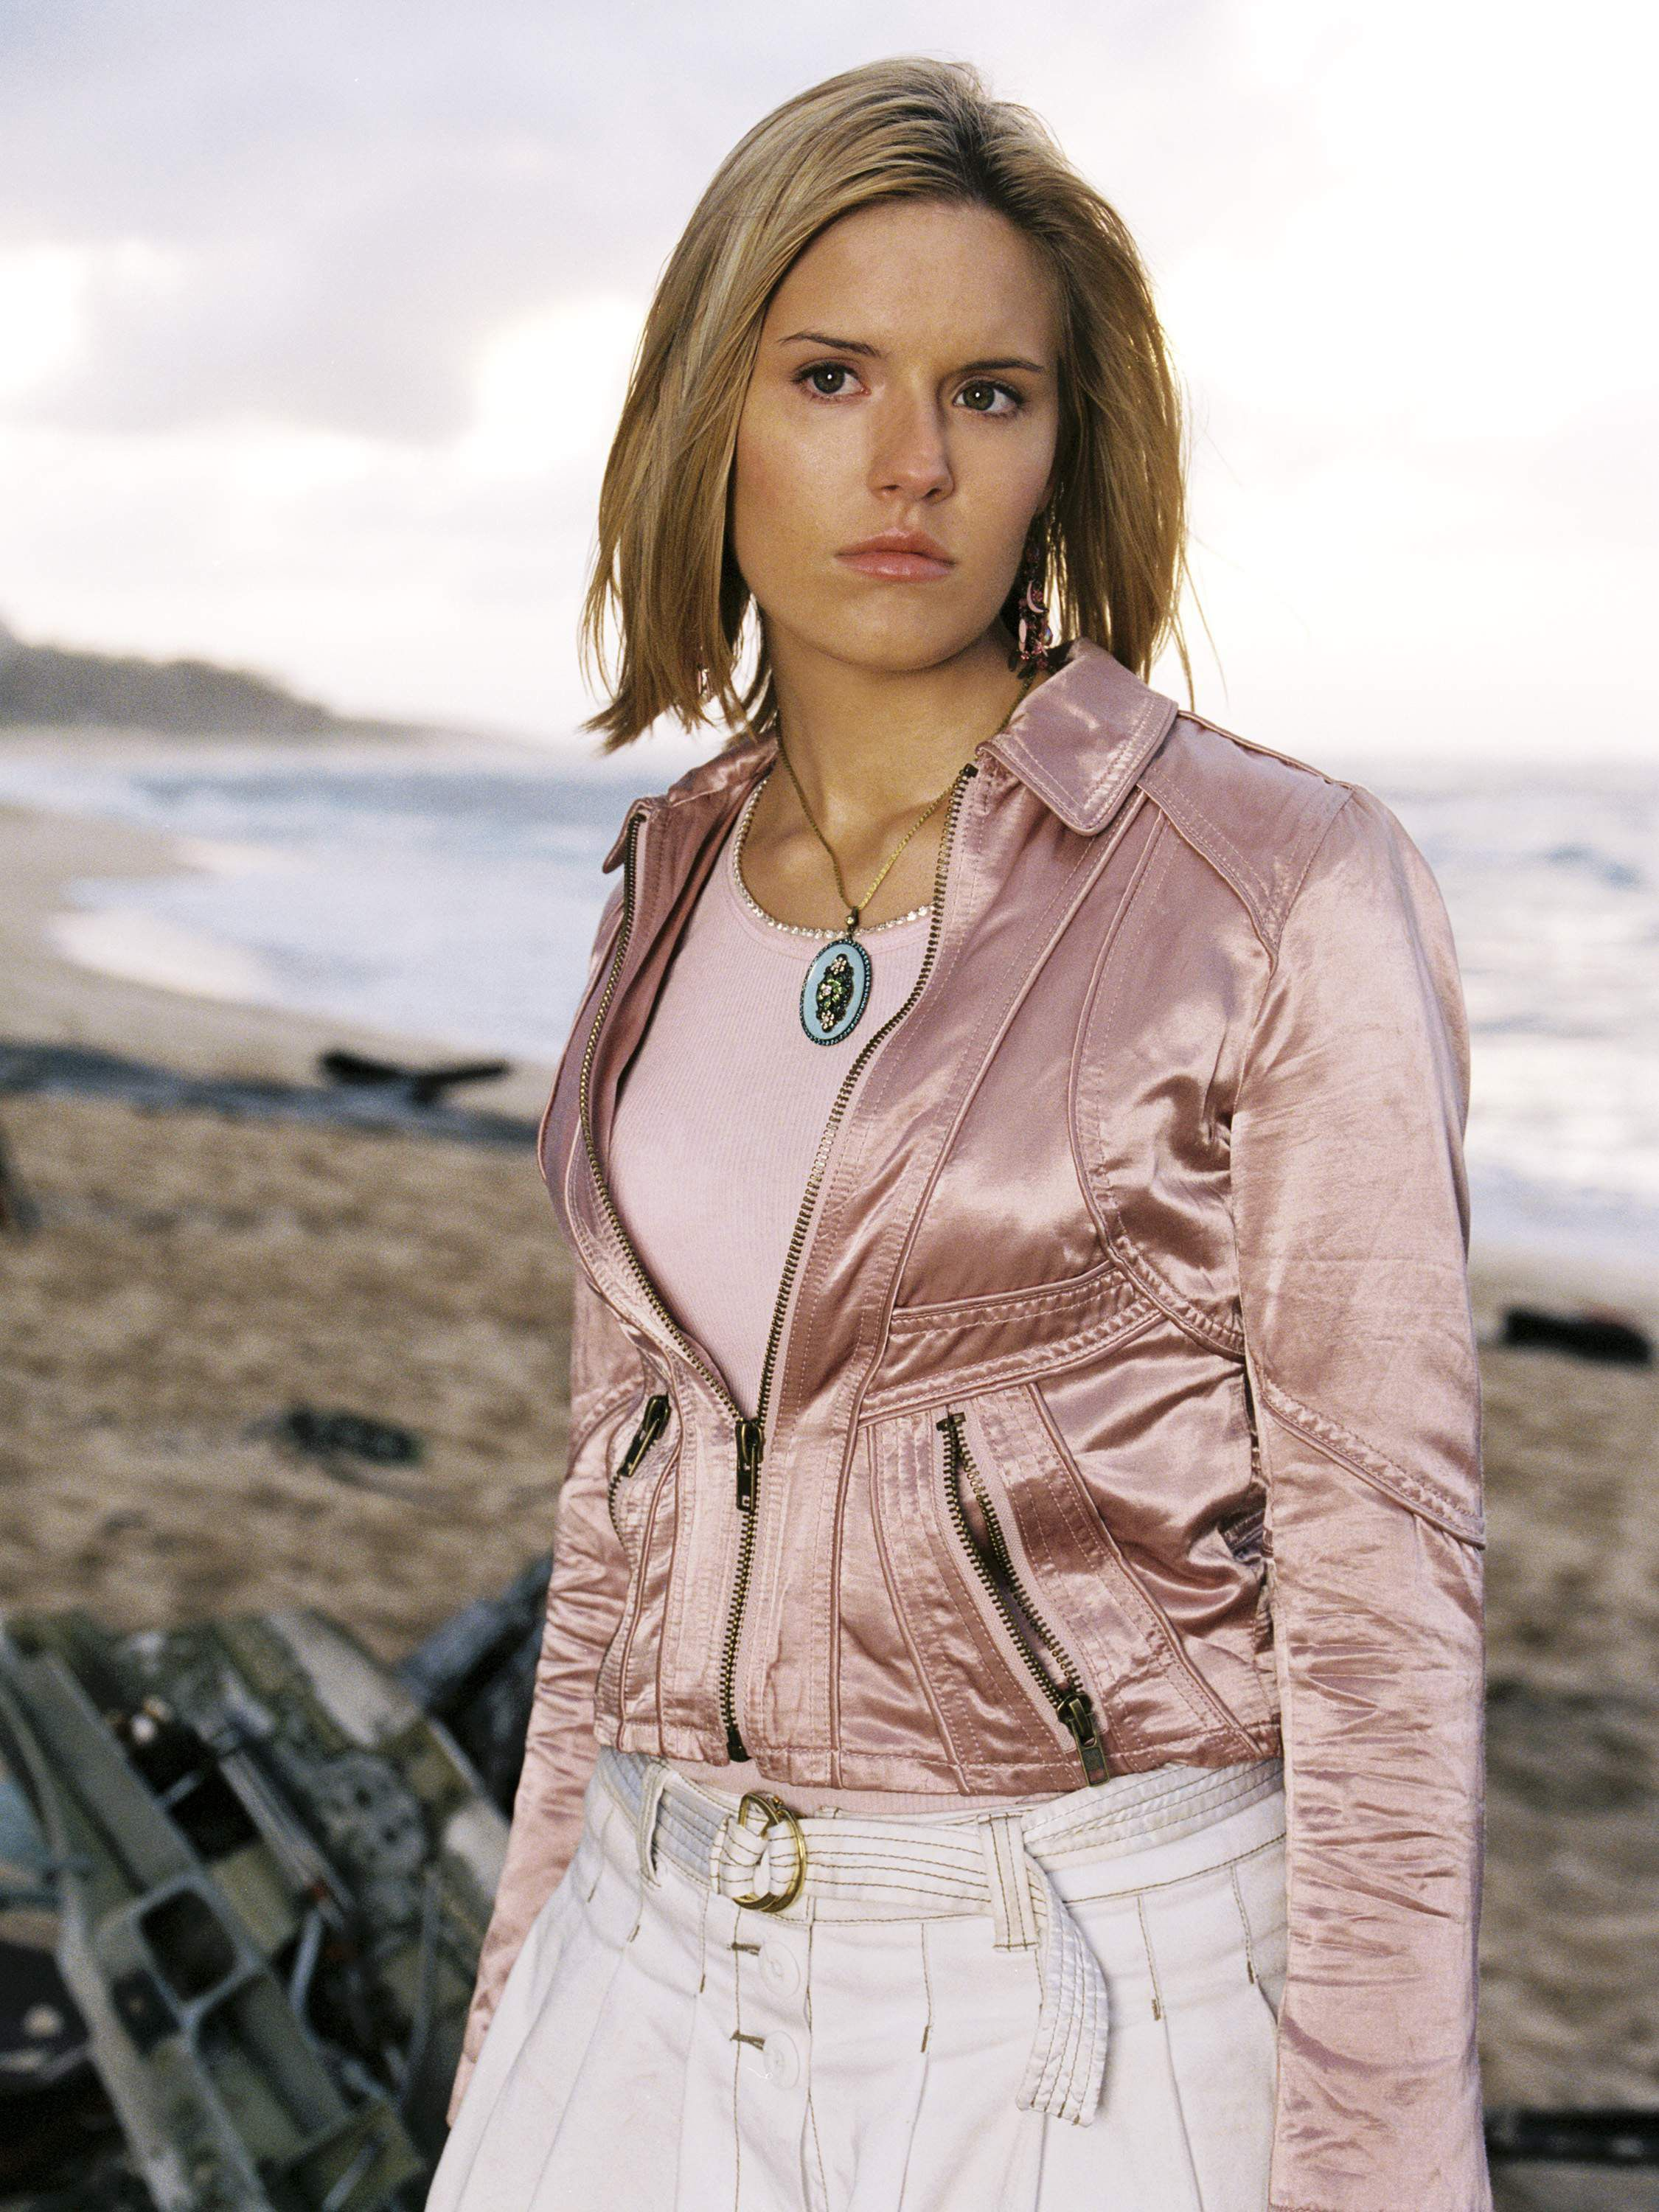 LOST - Season 1 Promo | Lost | Pinterest | Maggie grace